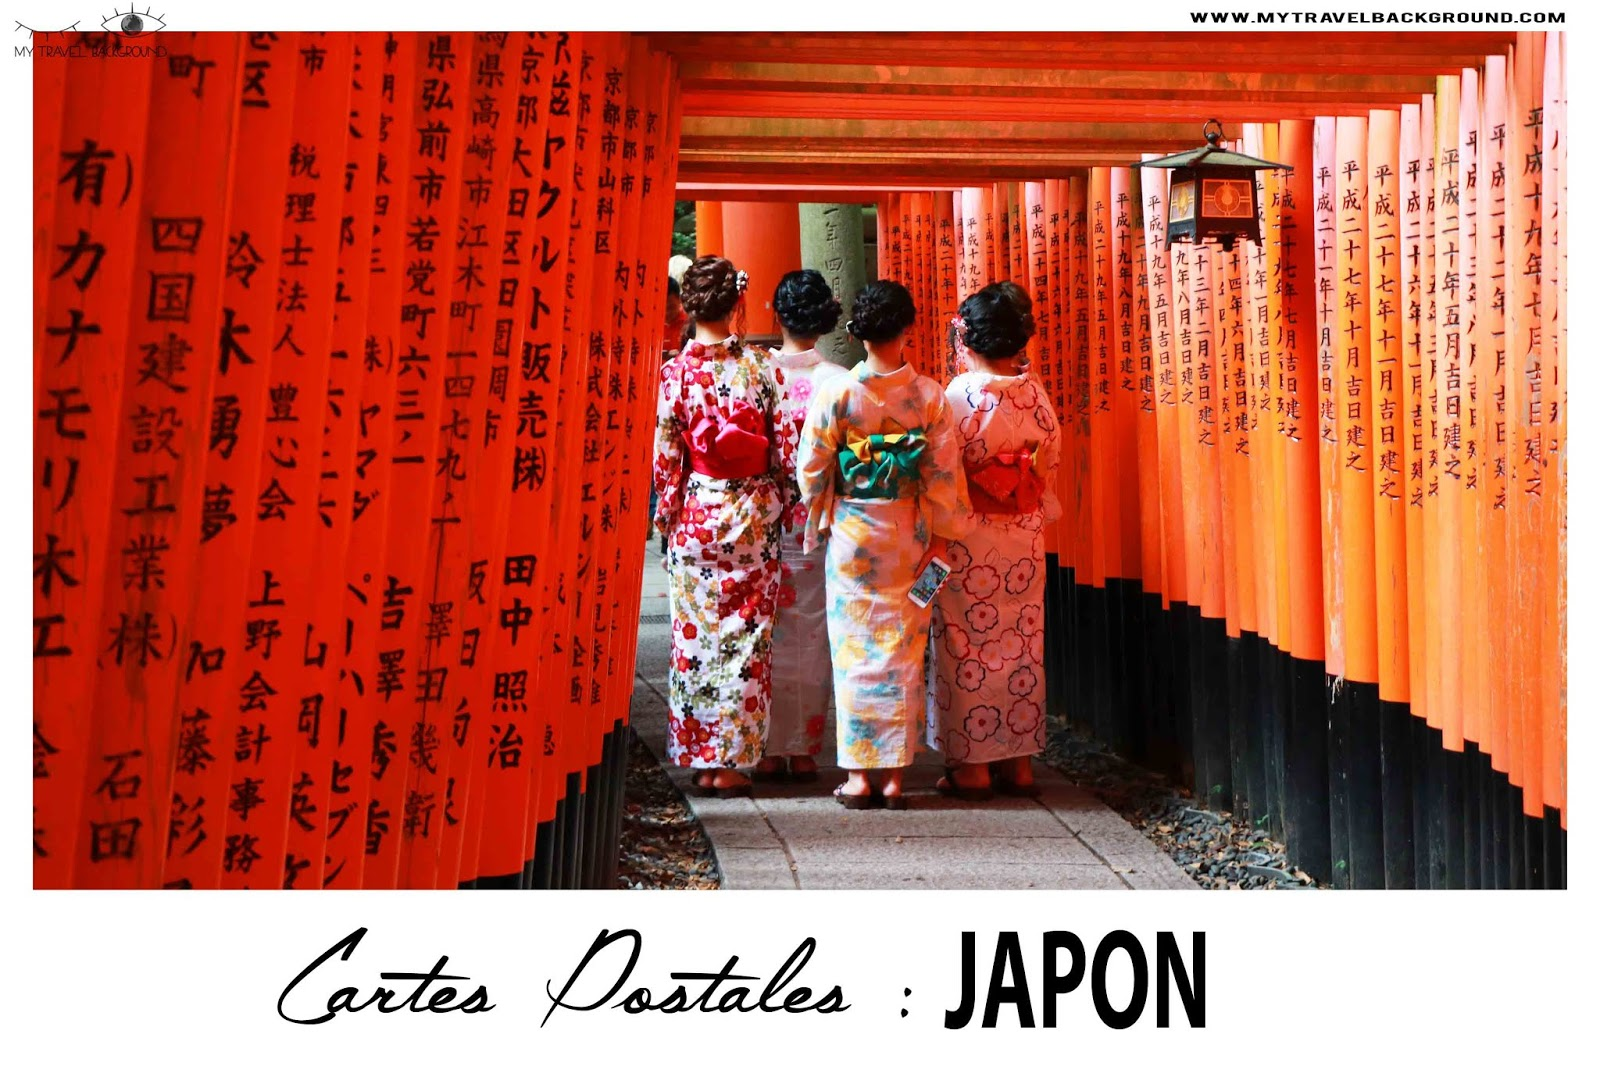 My Travel Background : cartes postales du Japon